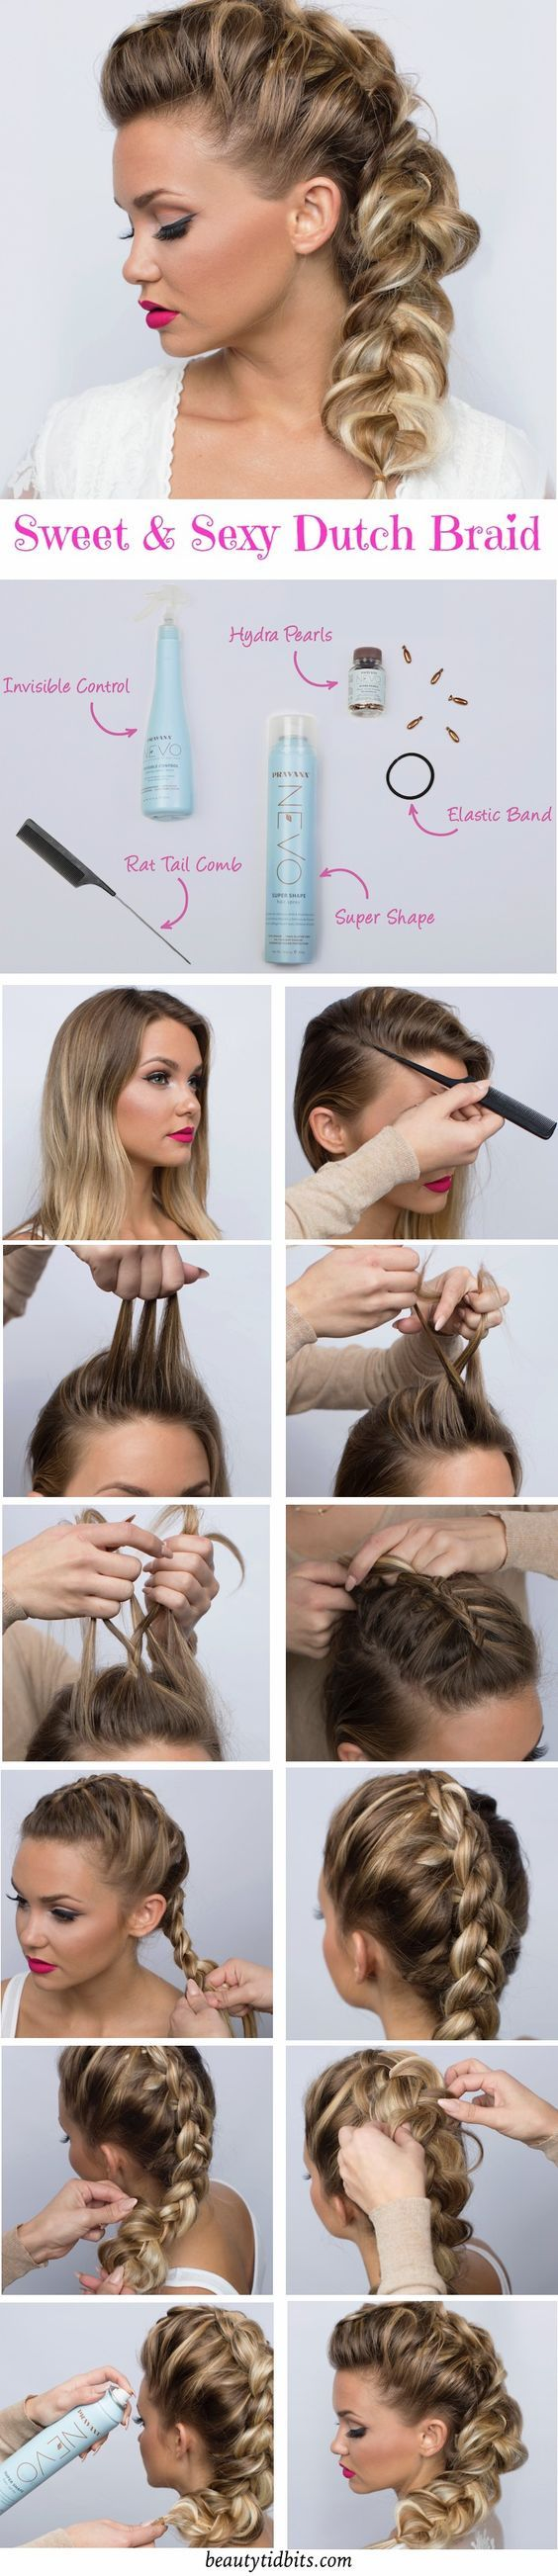 10 Glam Hairstyles for Prom